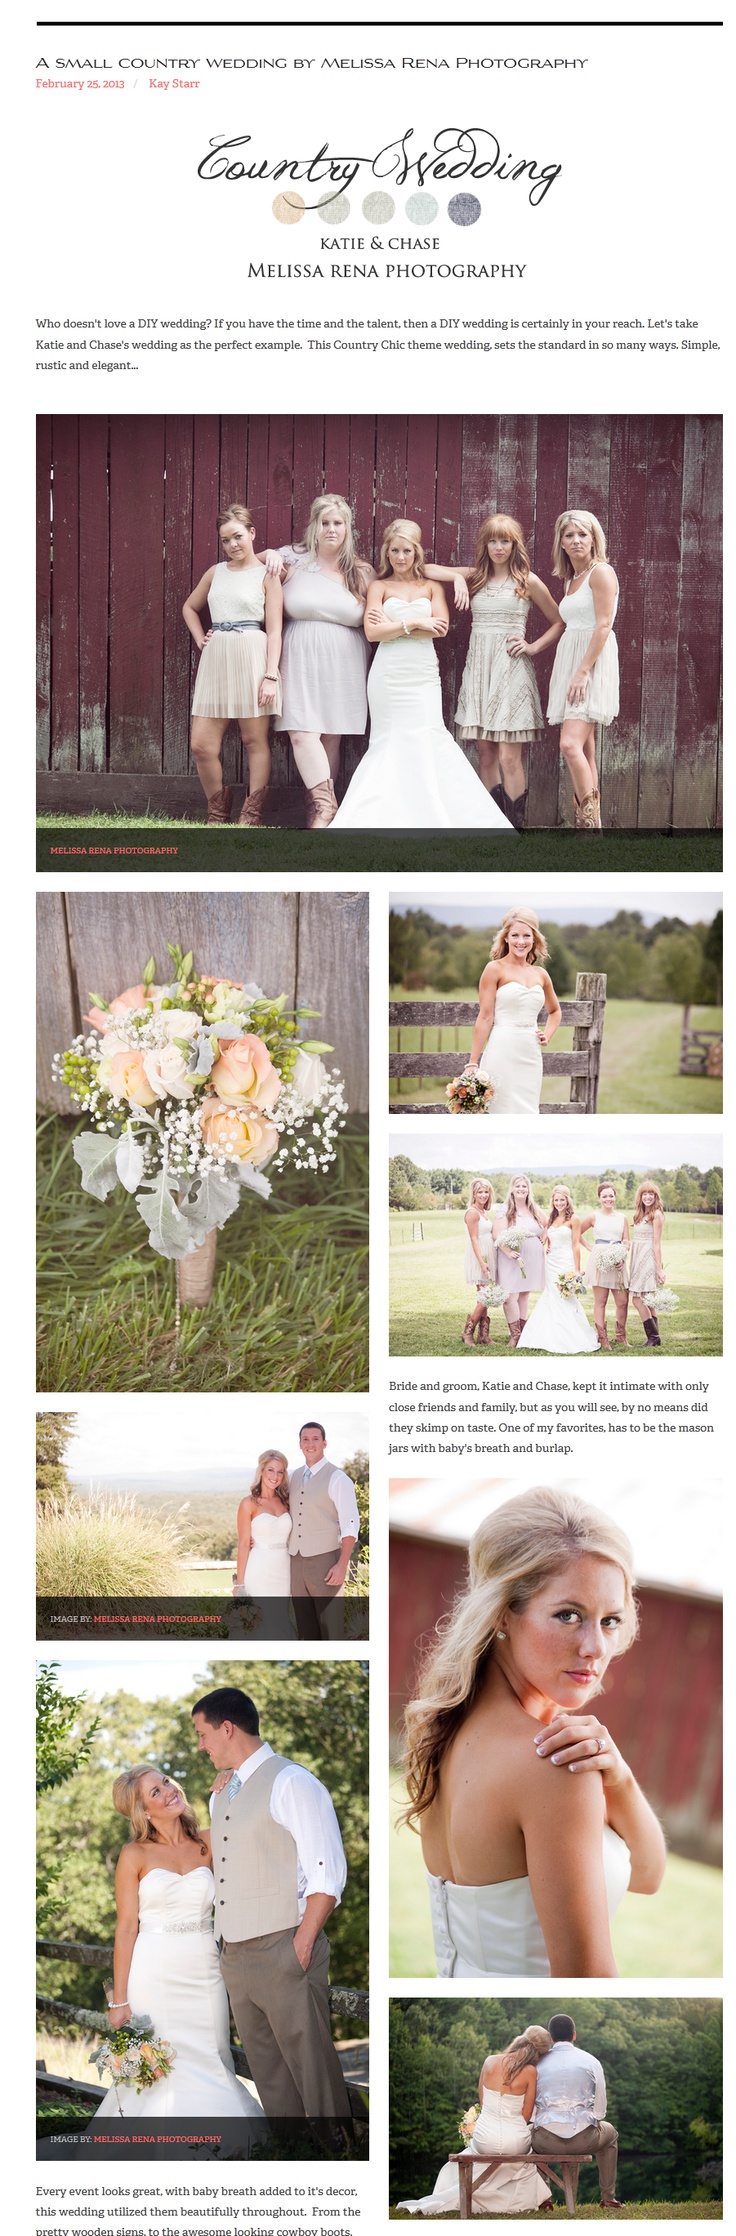 A small country wedding by Melissa Rena Photography love dress